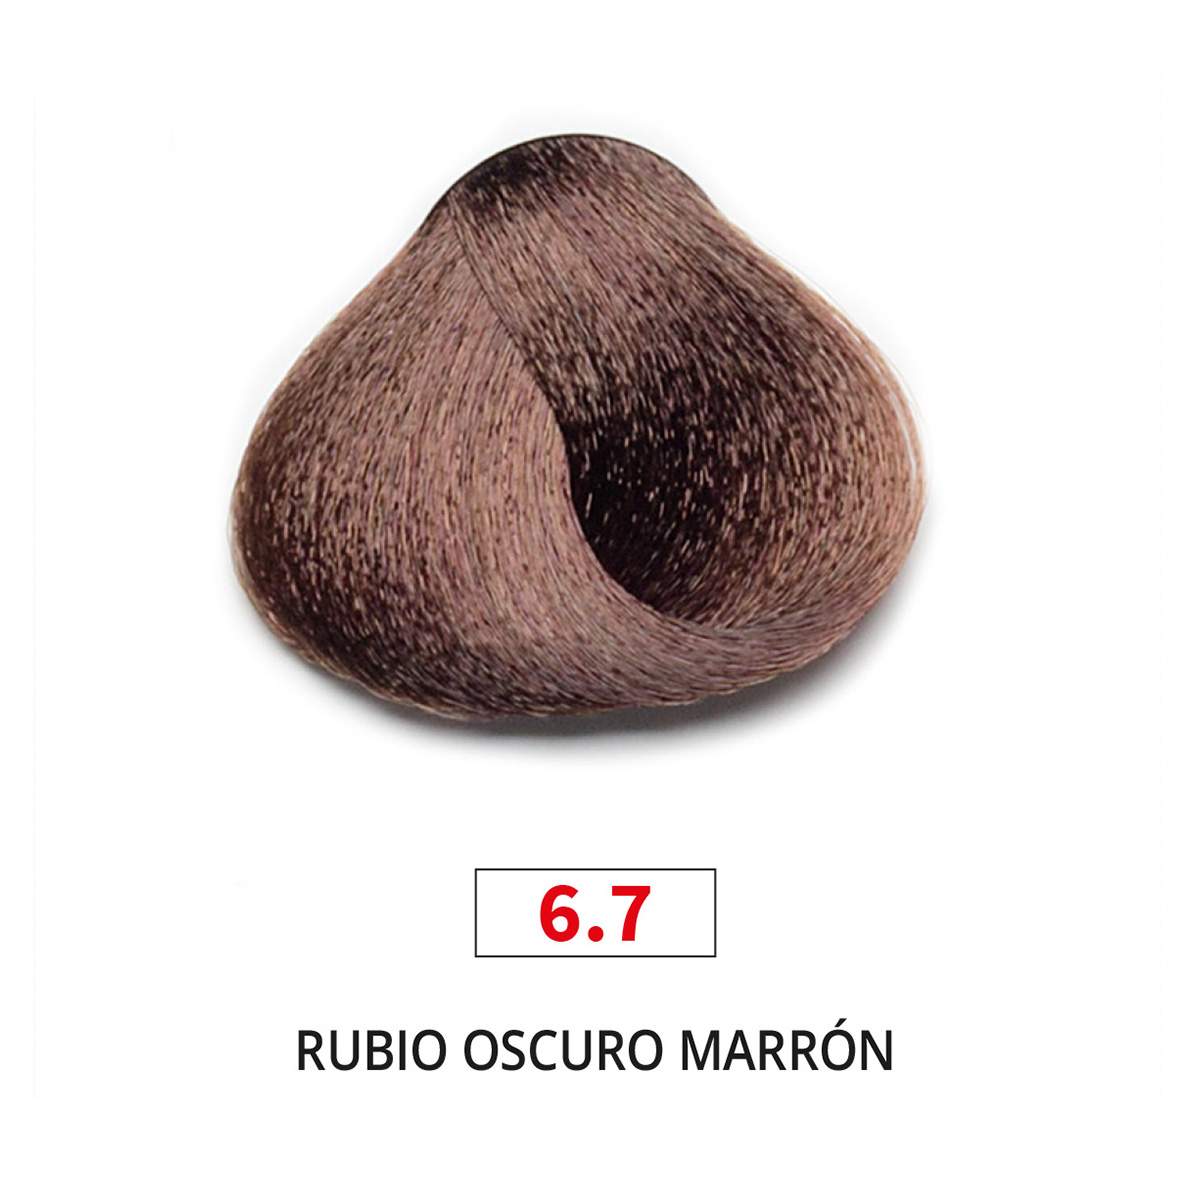 Marron 6.7 - Yanguas Professional